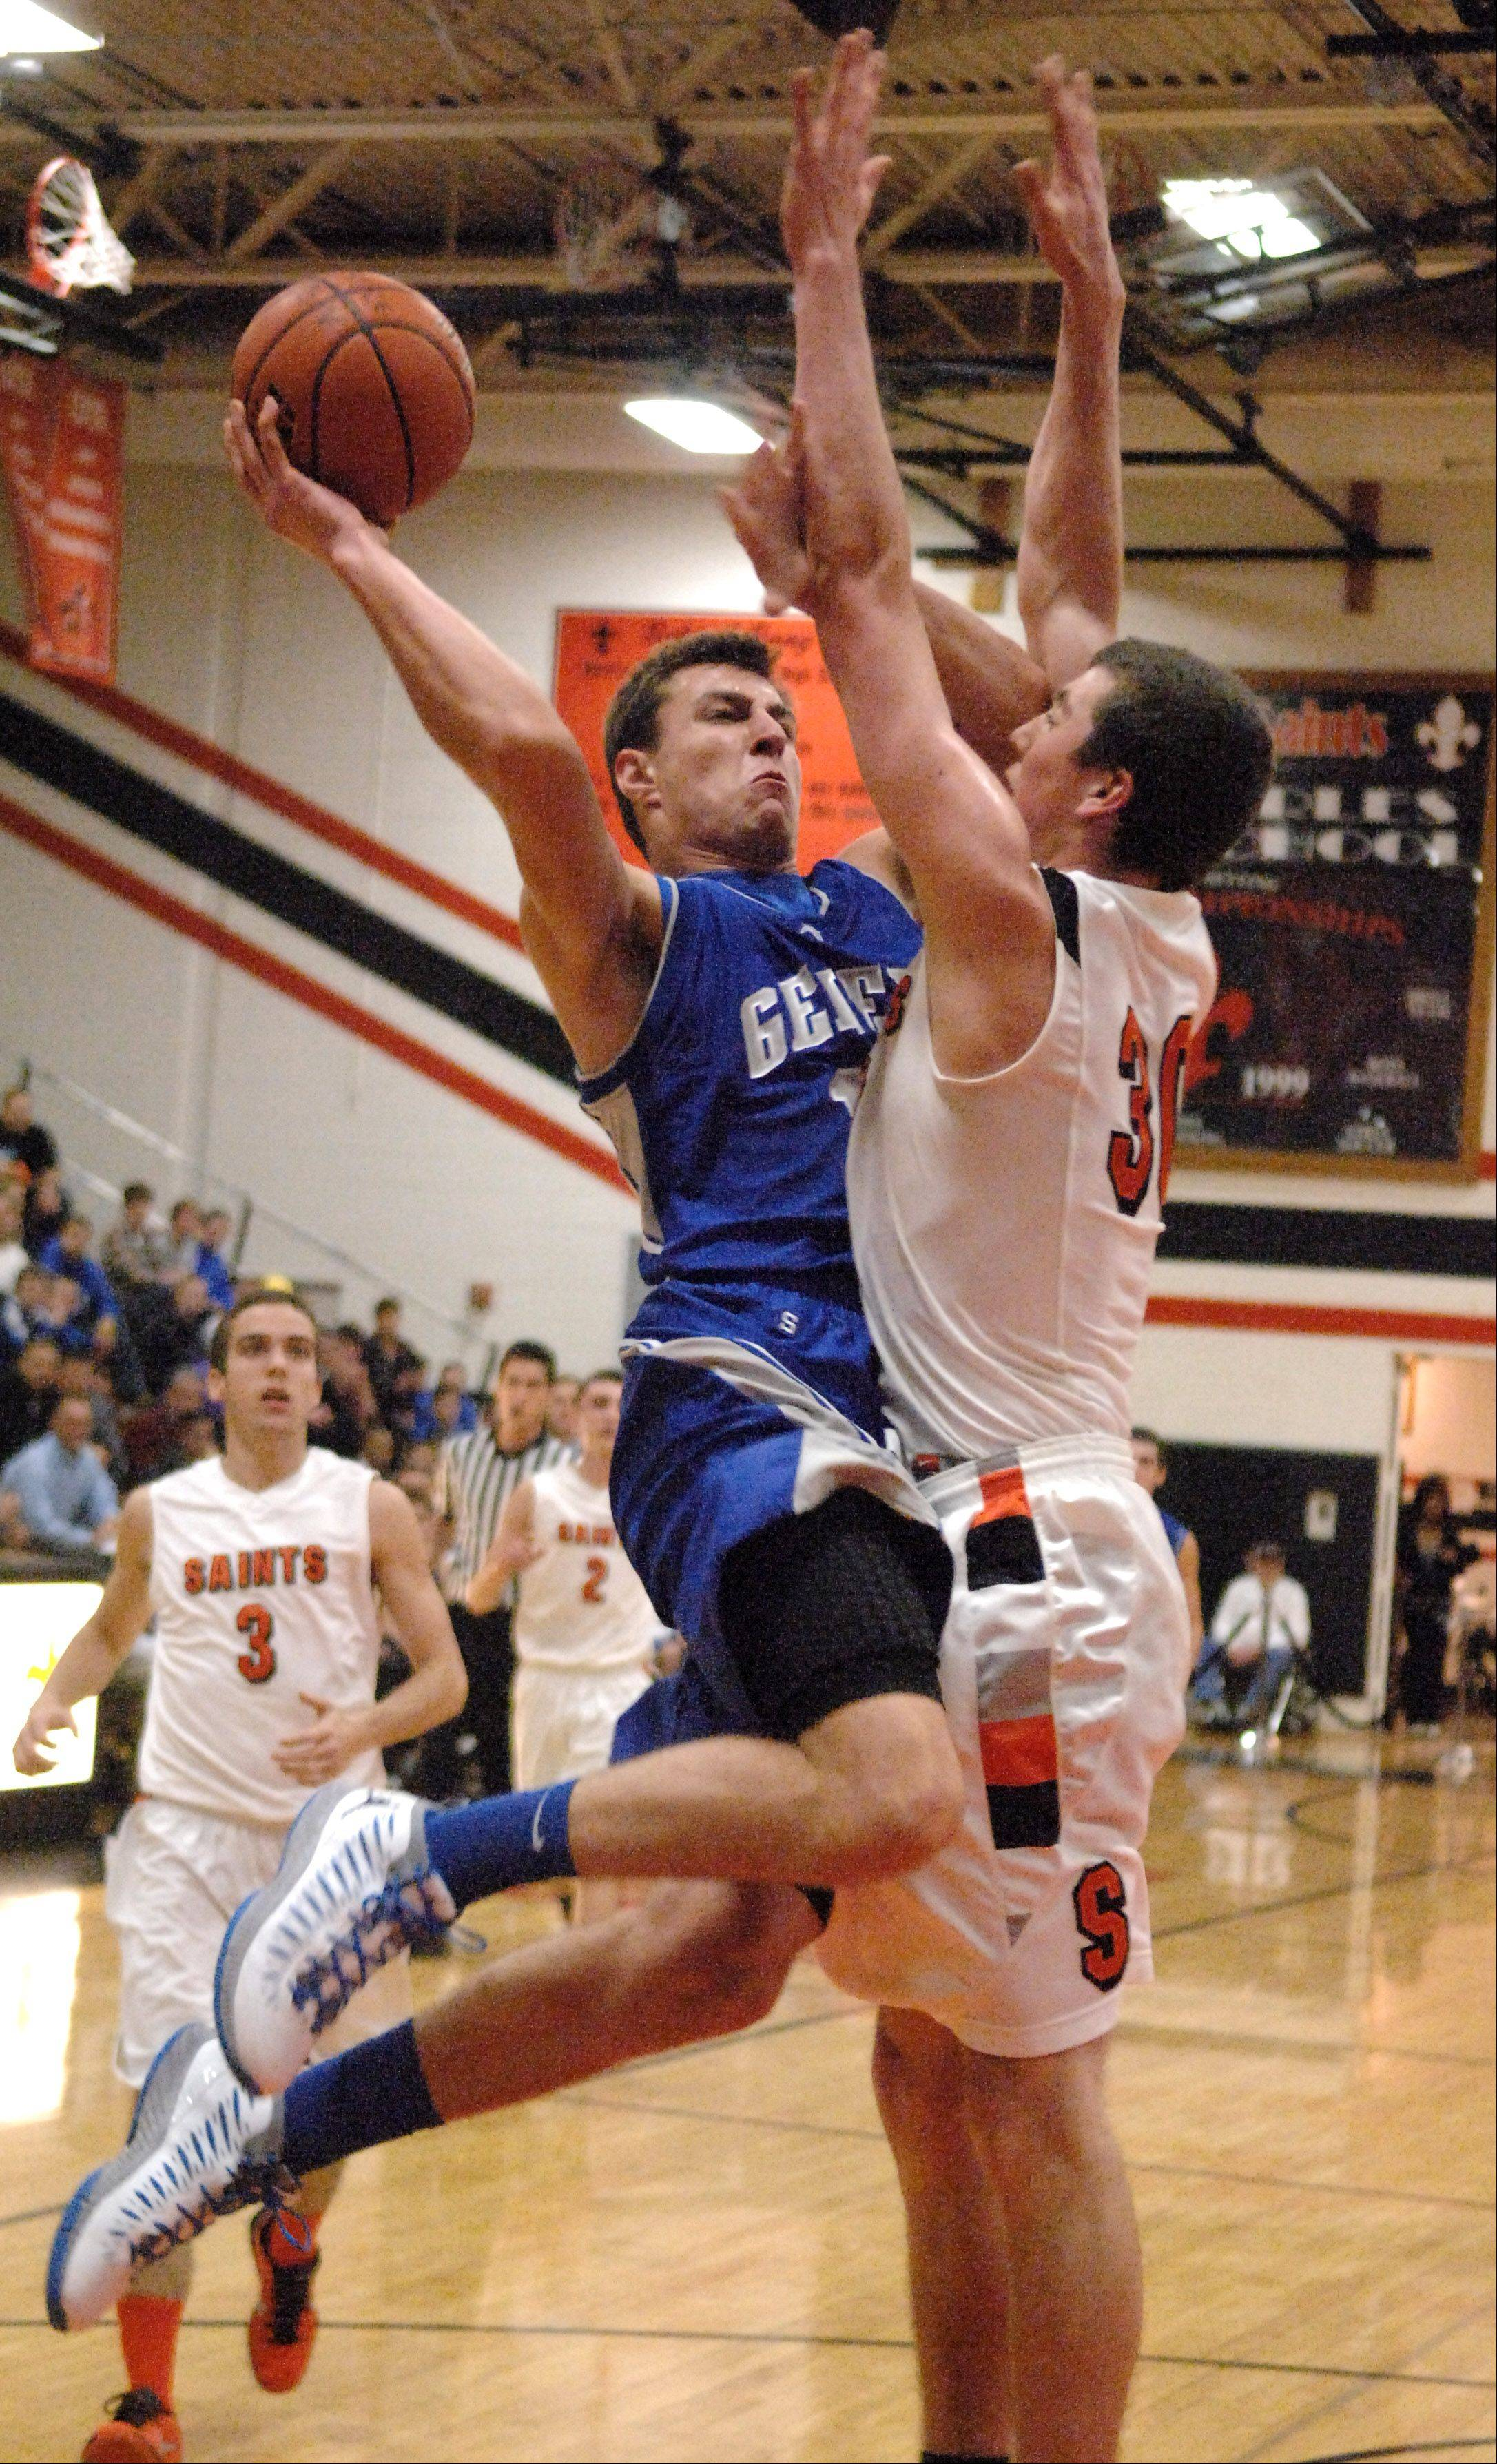 Geneva's Kyle Brown drives against St. Charles East's David Mason.